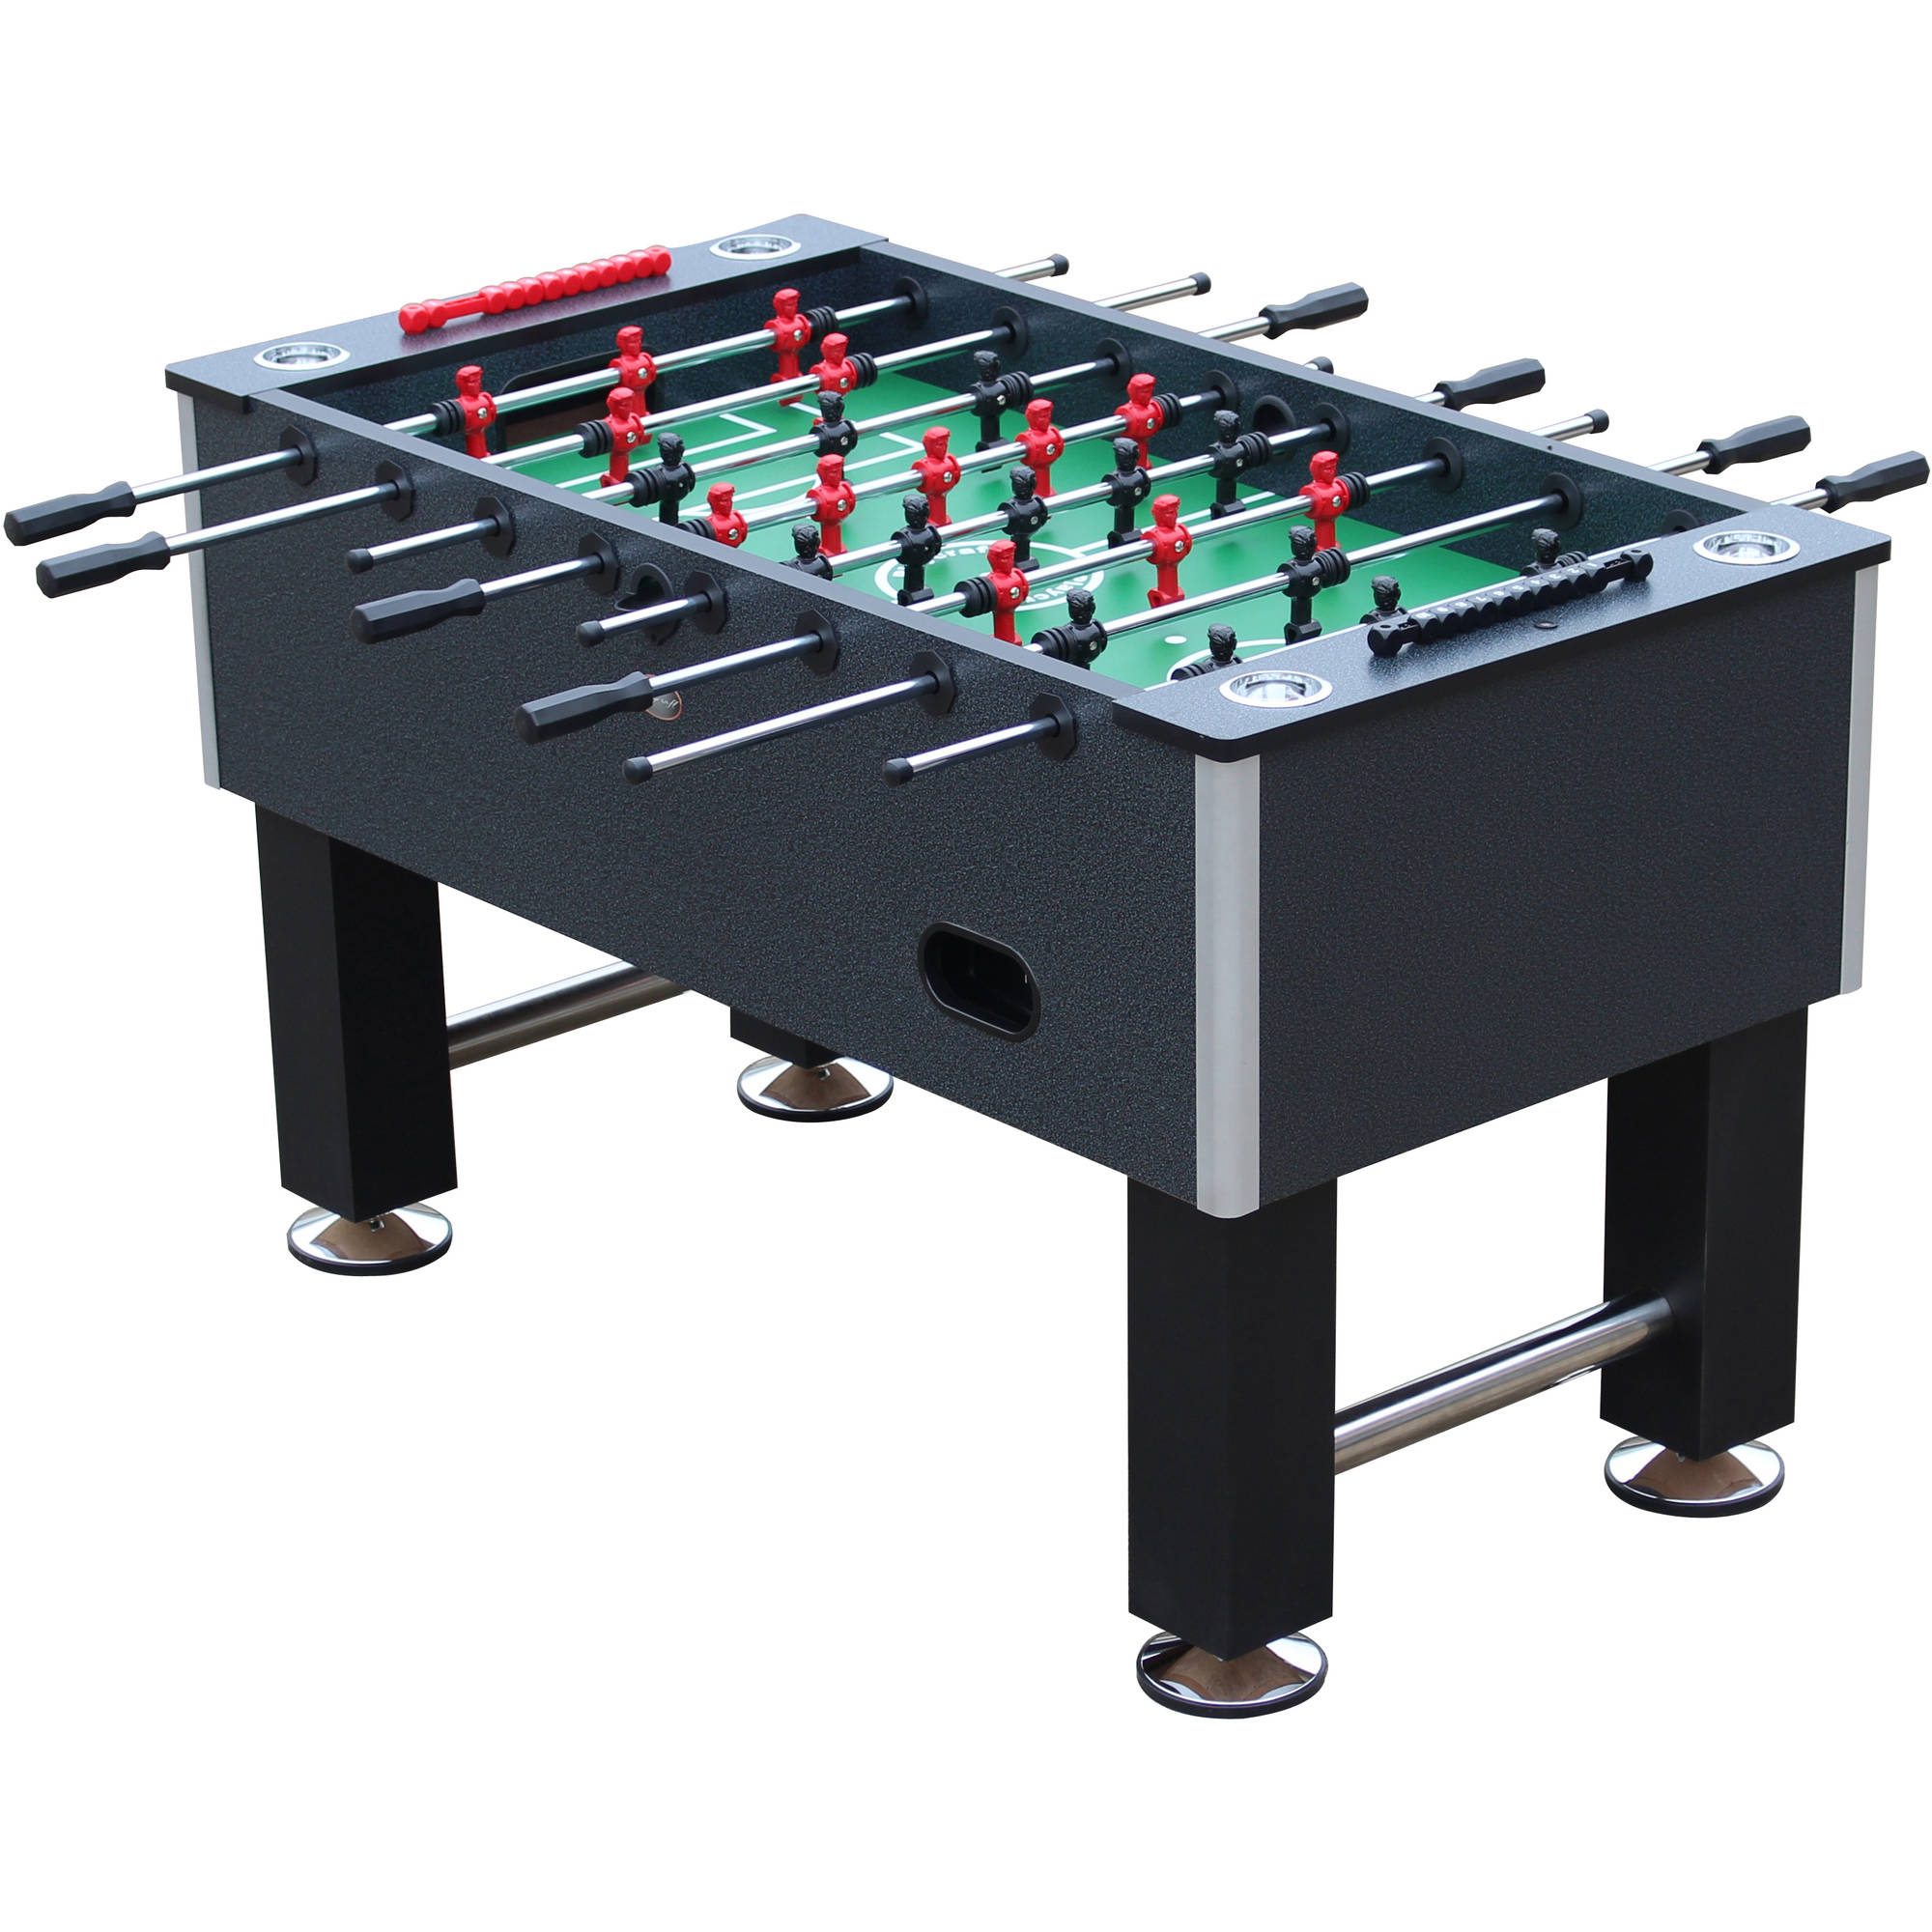 Playcraft The Pitch Foosball Table, Charcoal